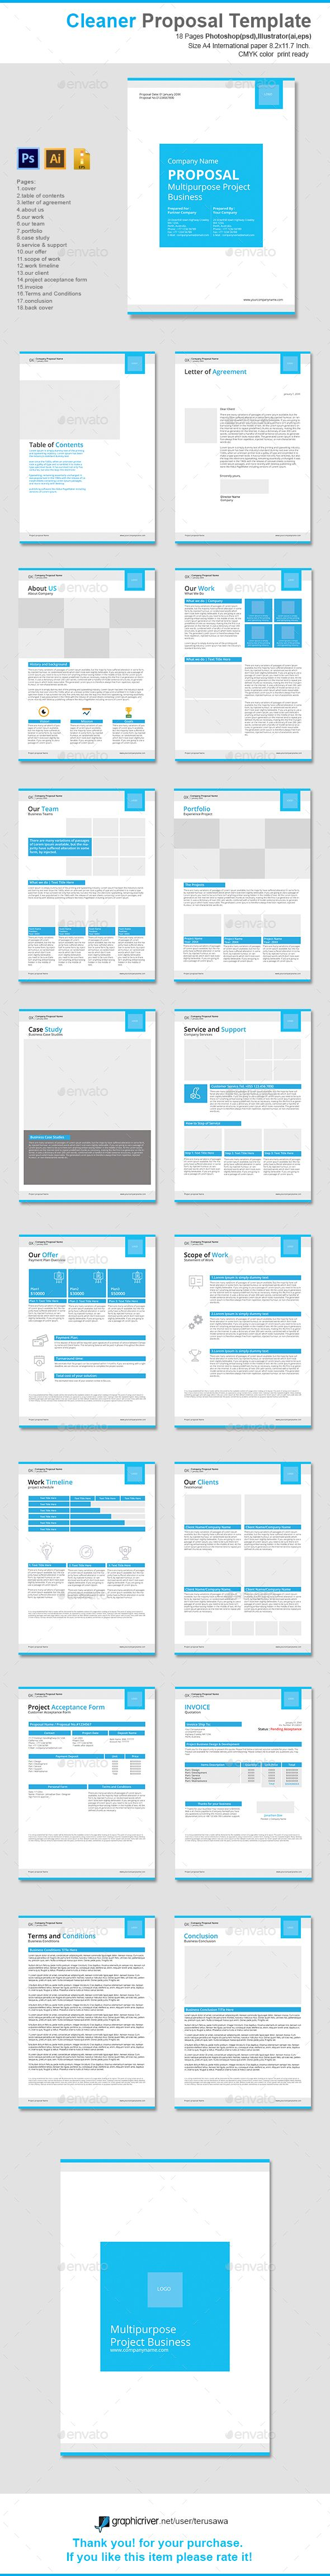 Cleaner Proposal Template  Proposal Templates Proposals And